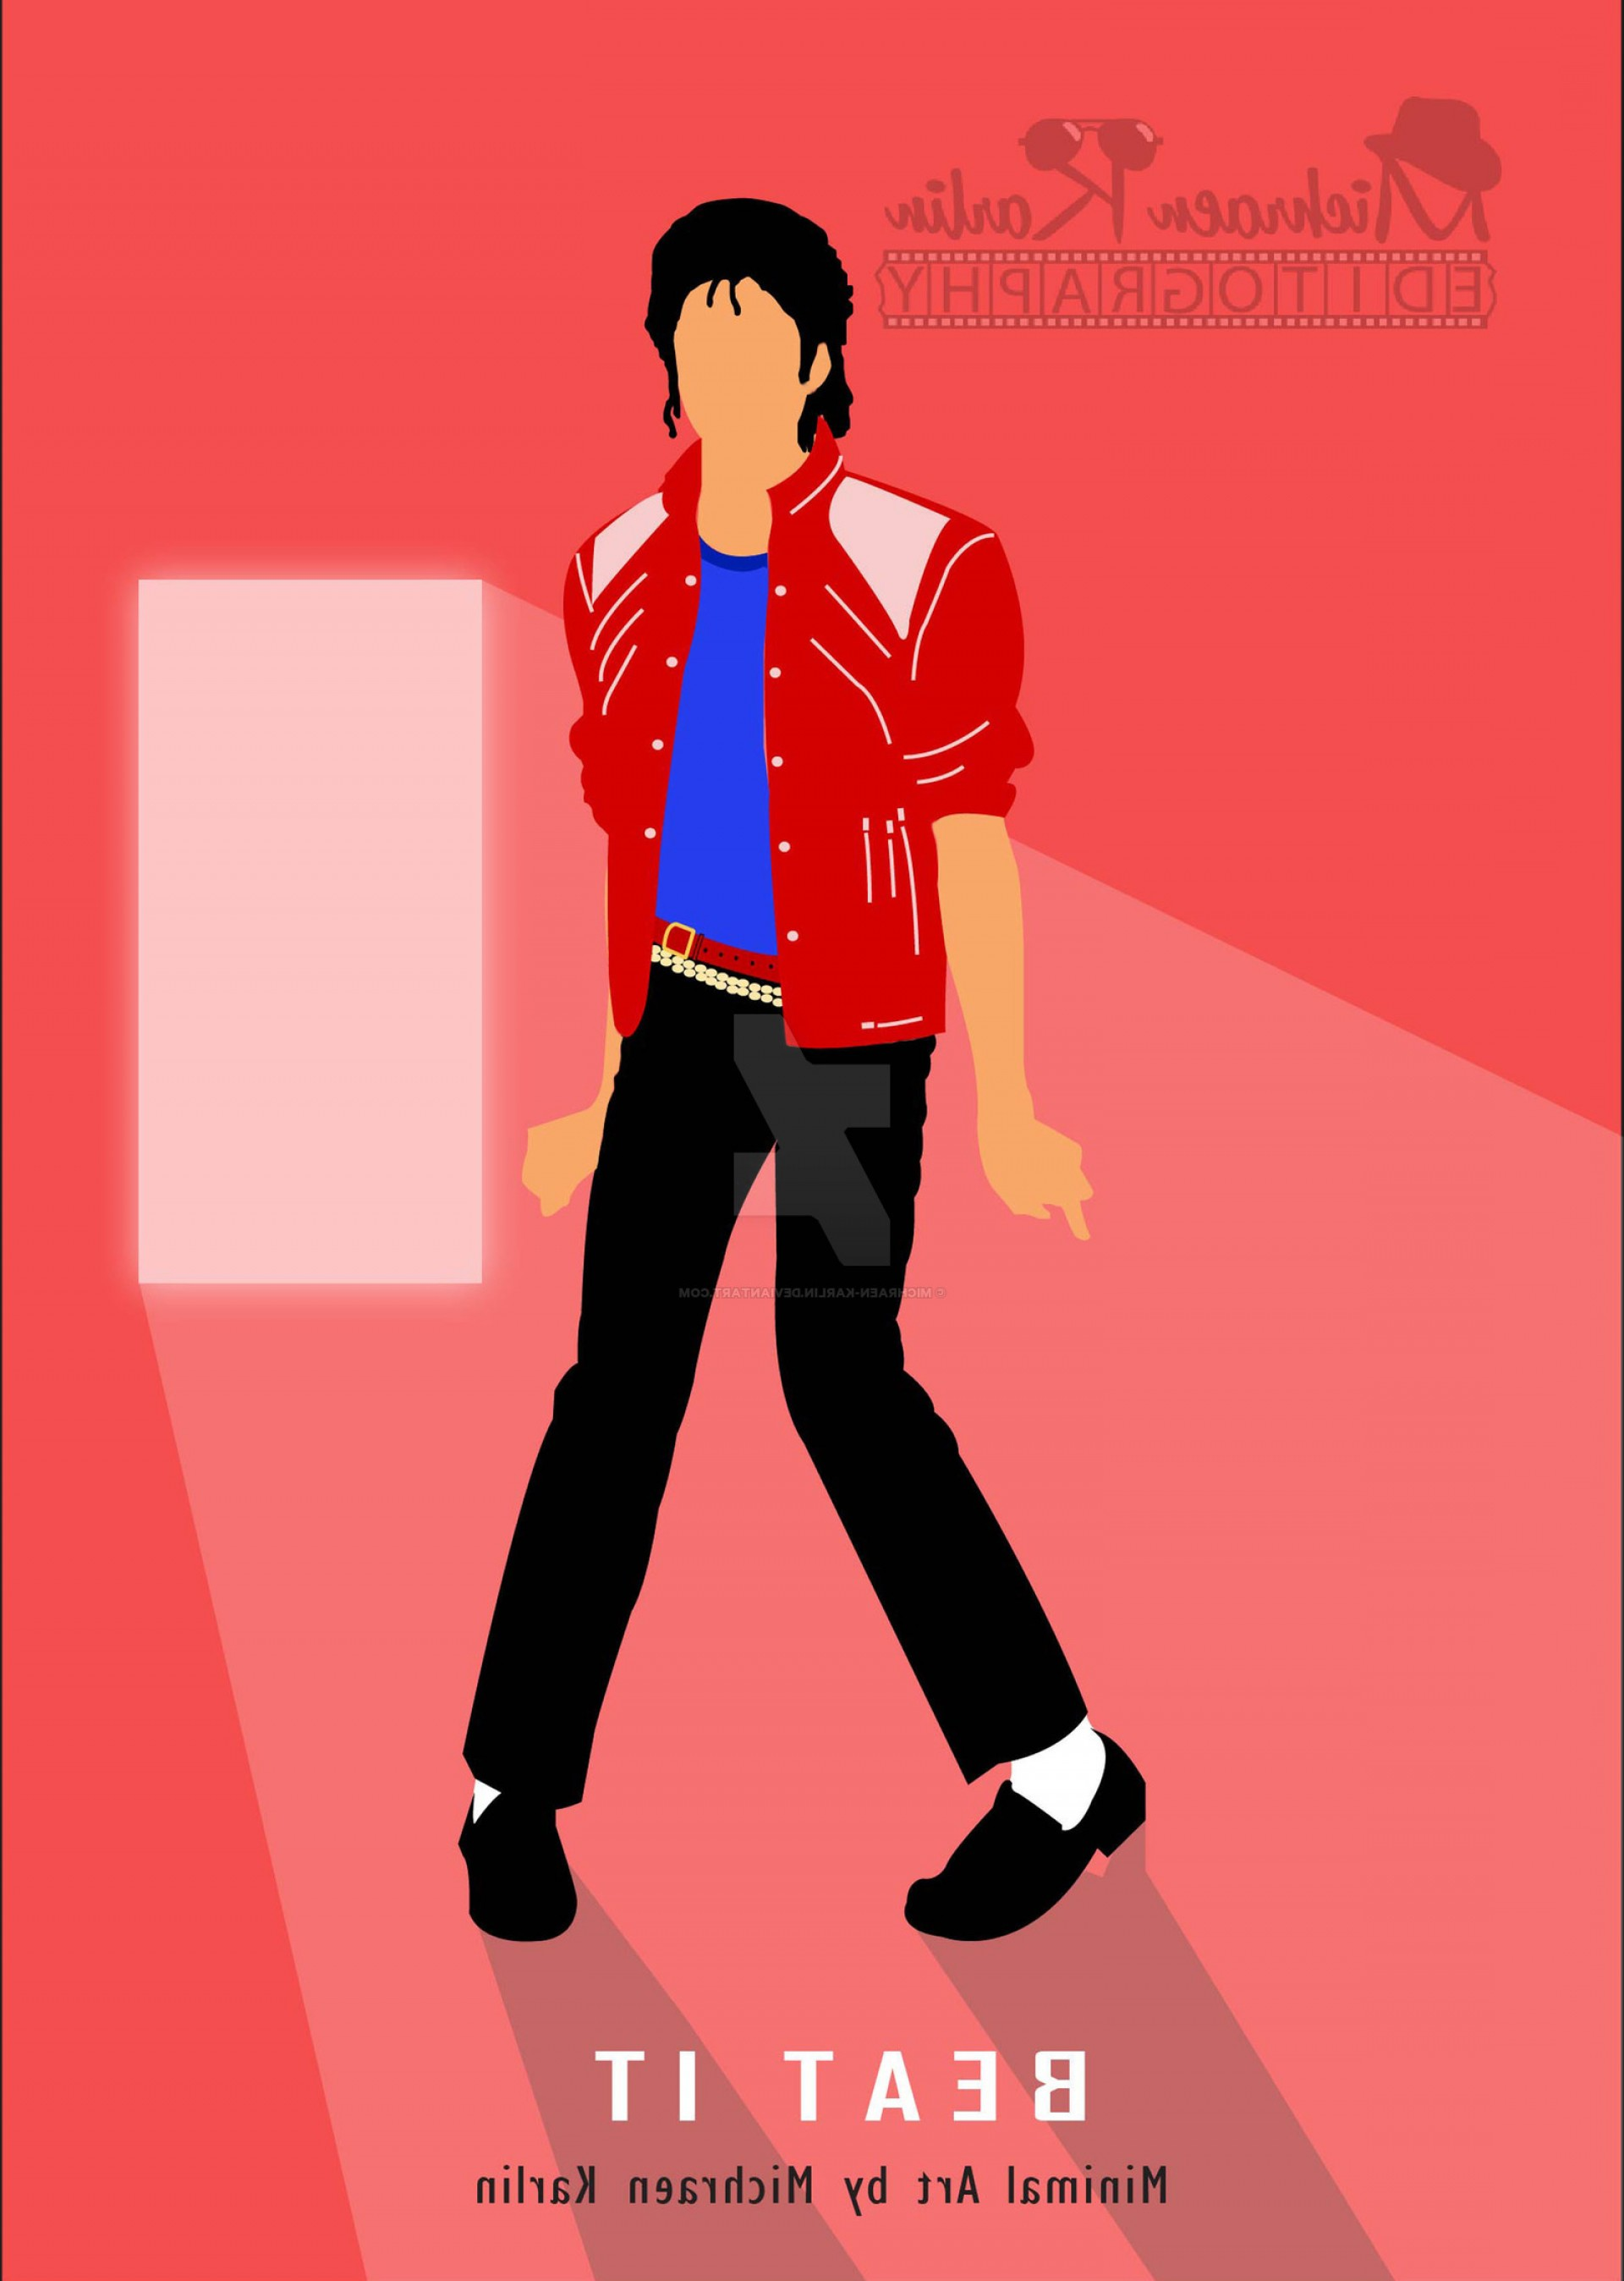 Bad Michael Jackson Vector: Minimal Poster By Michraen Karlin